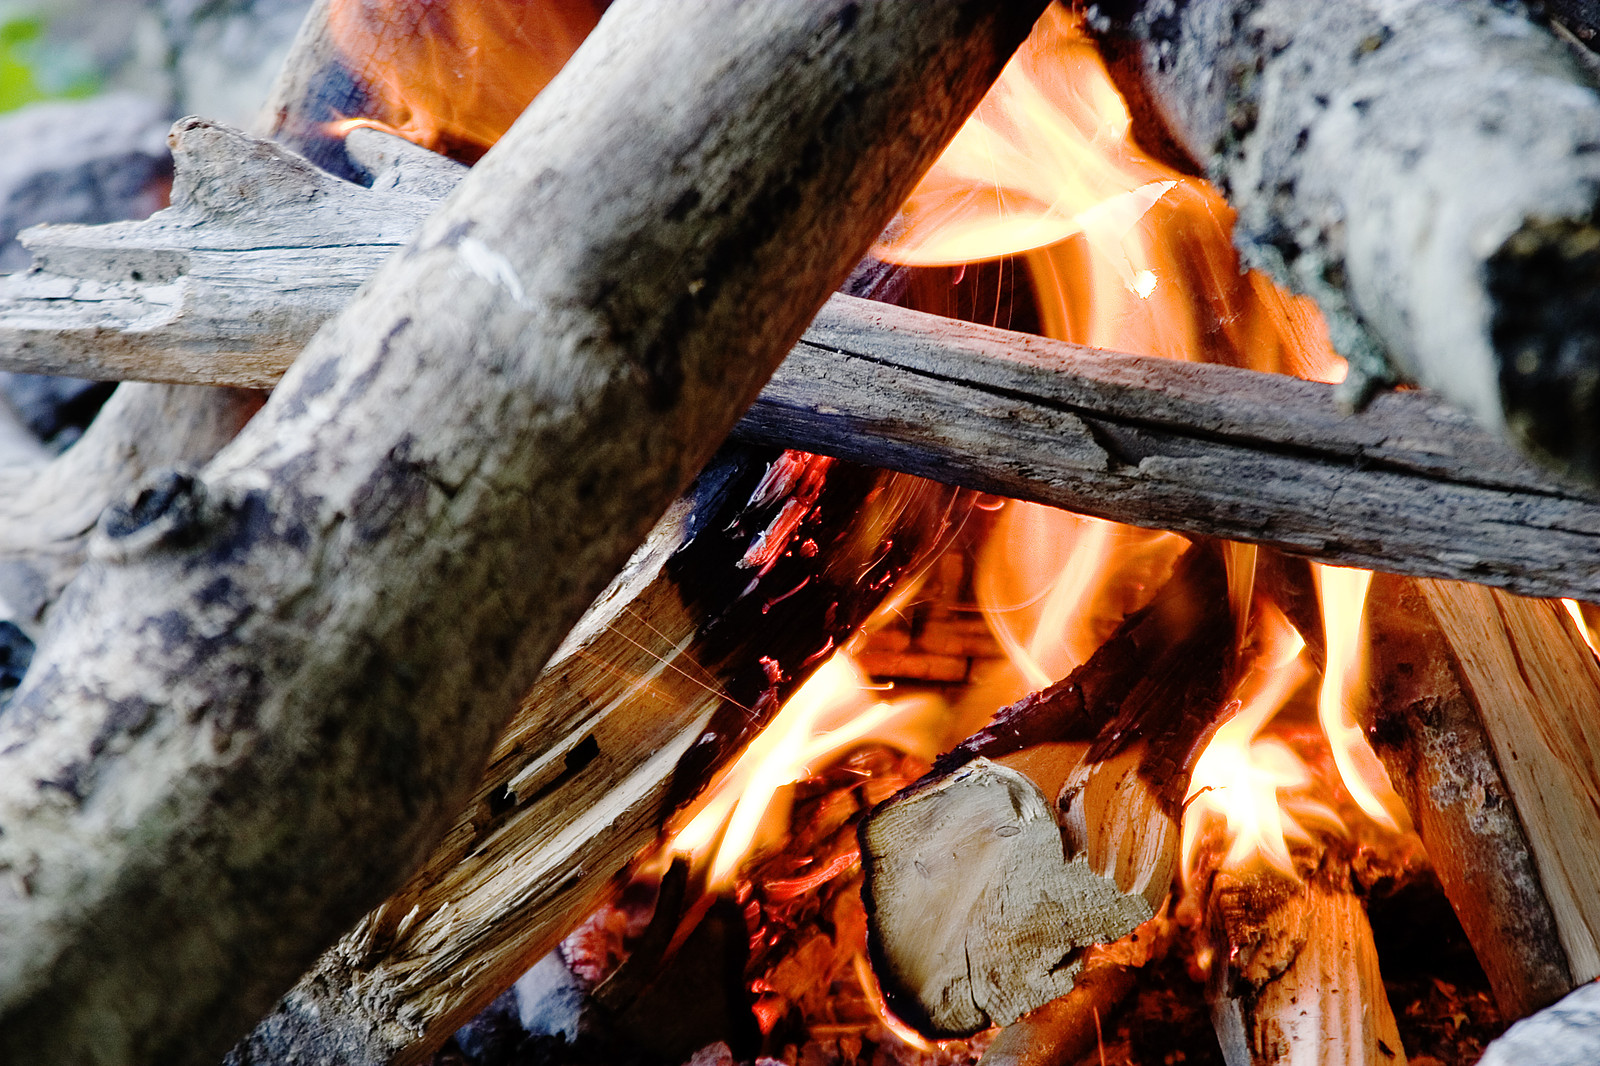 More Midwestern Ontario Fire Bans Issued